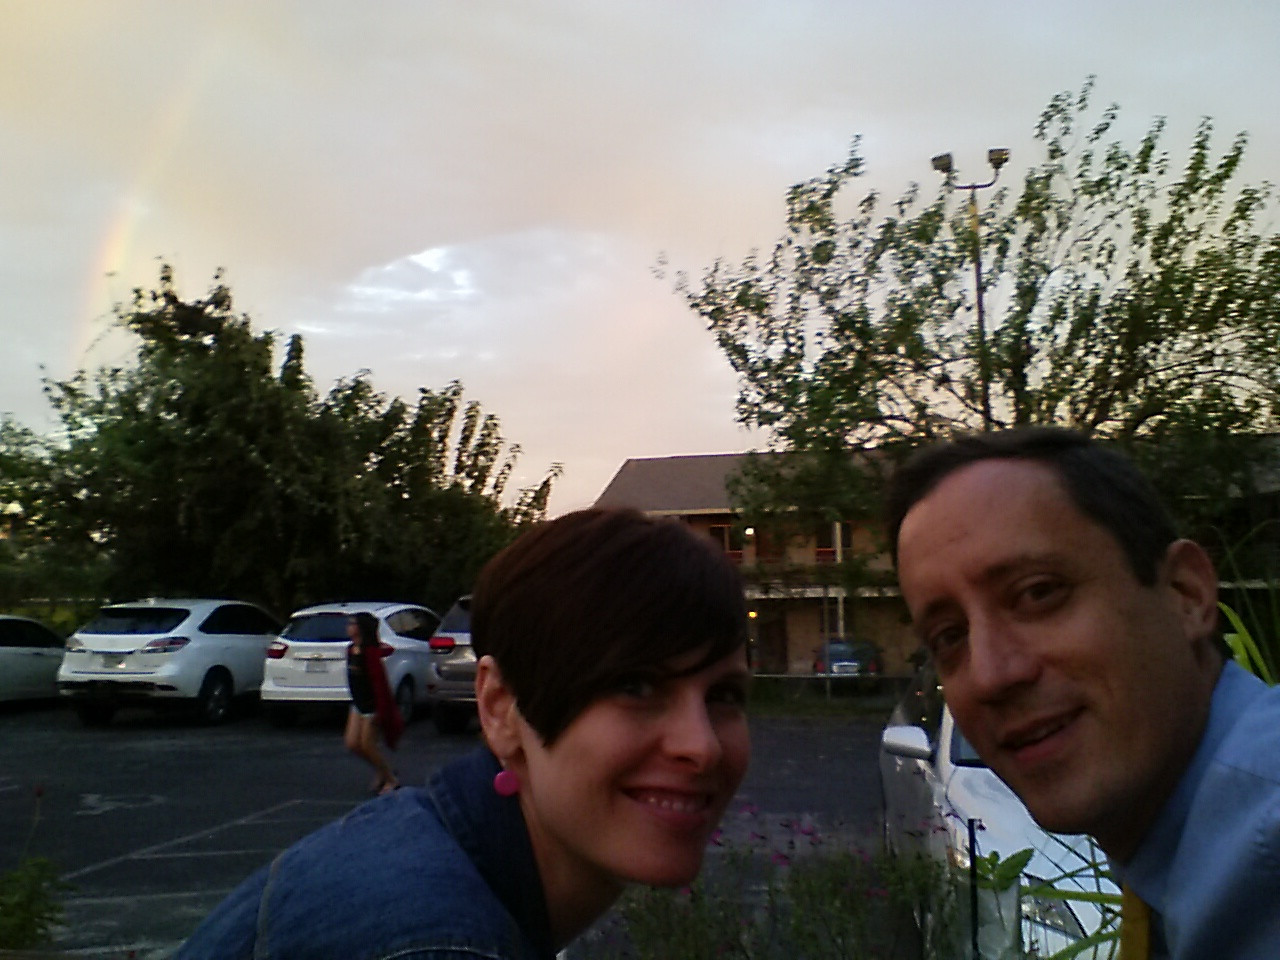 Attempt at Selfie with rainbow